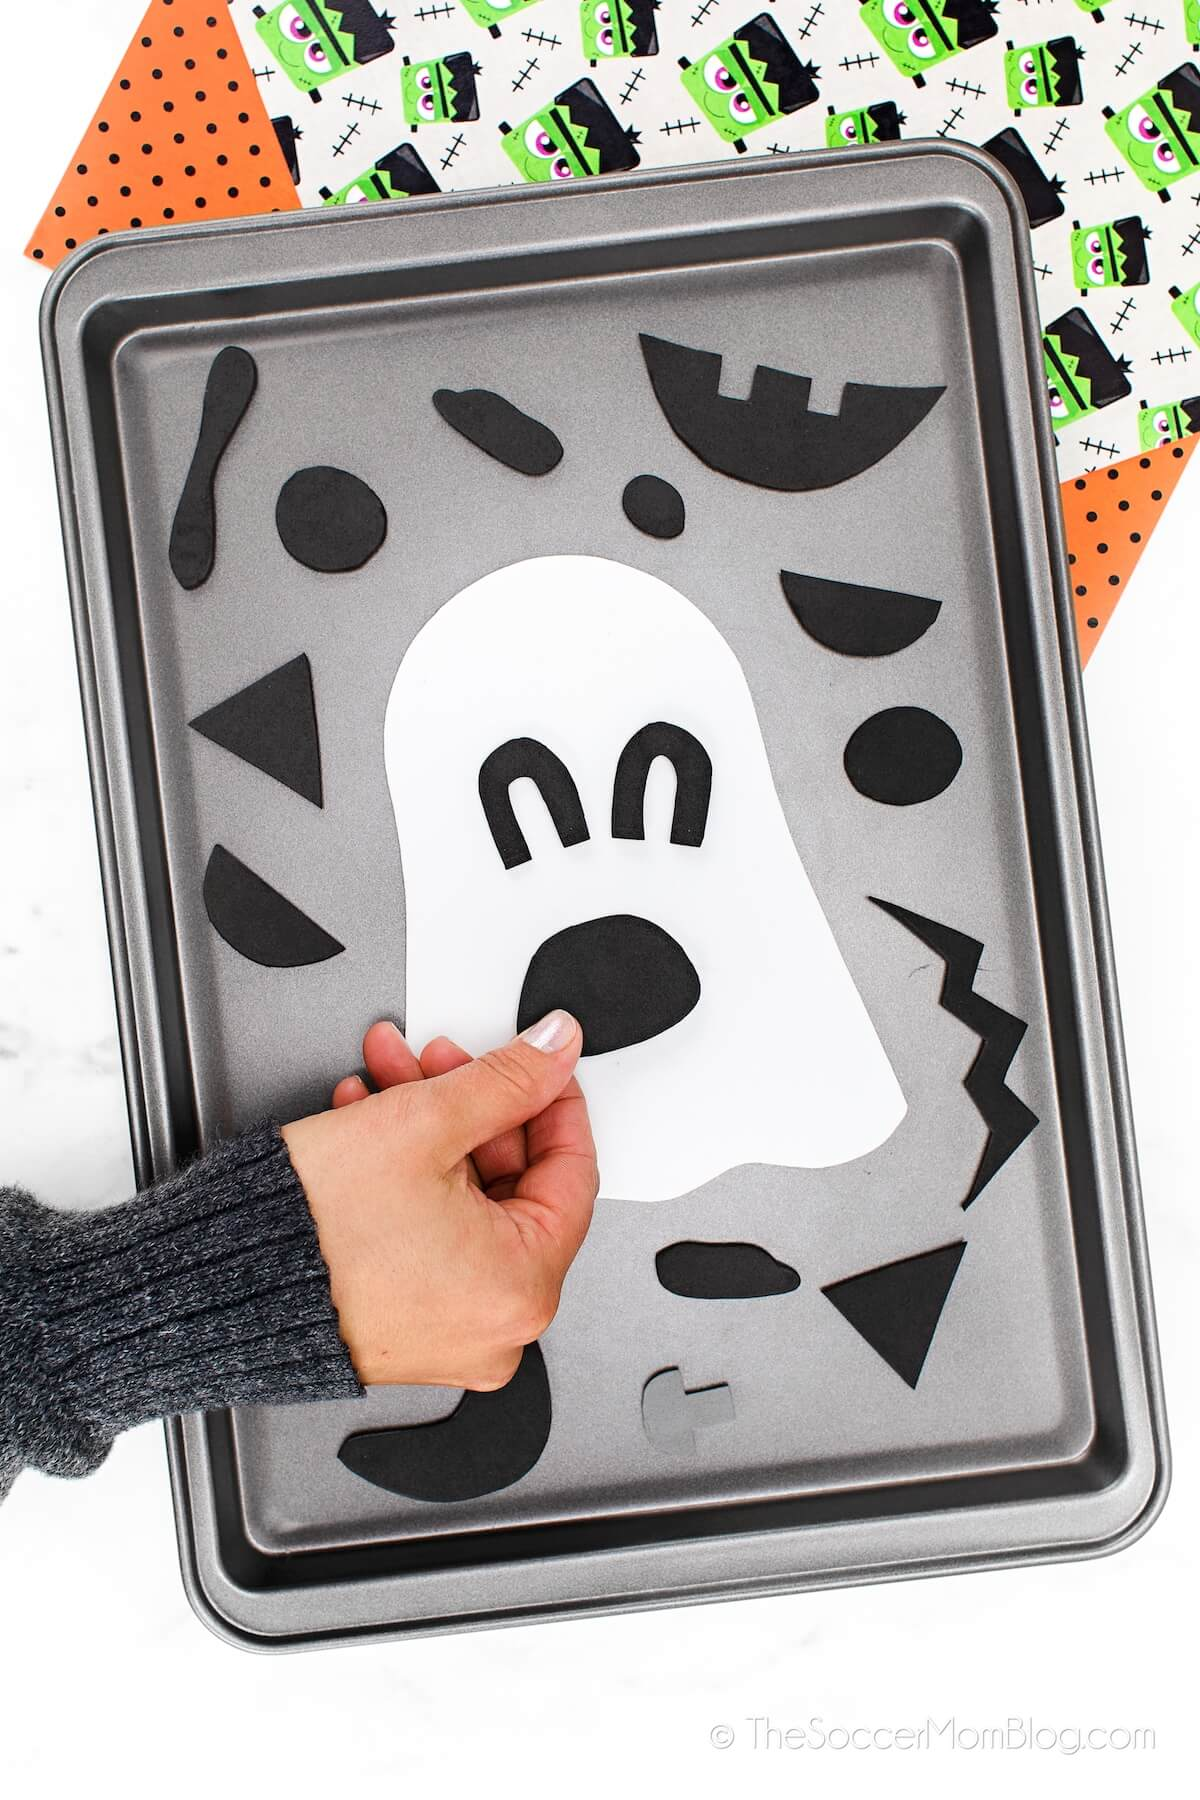 making funny faces with ghost Halloween magnet